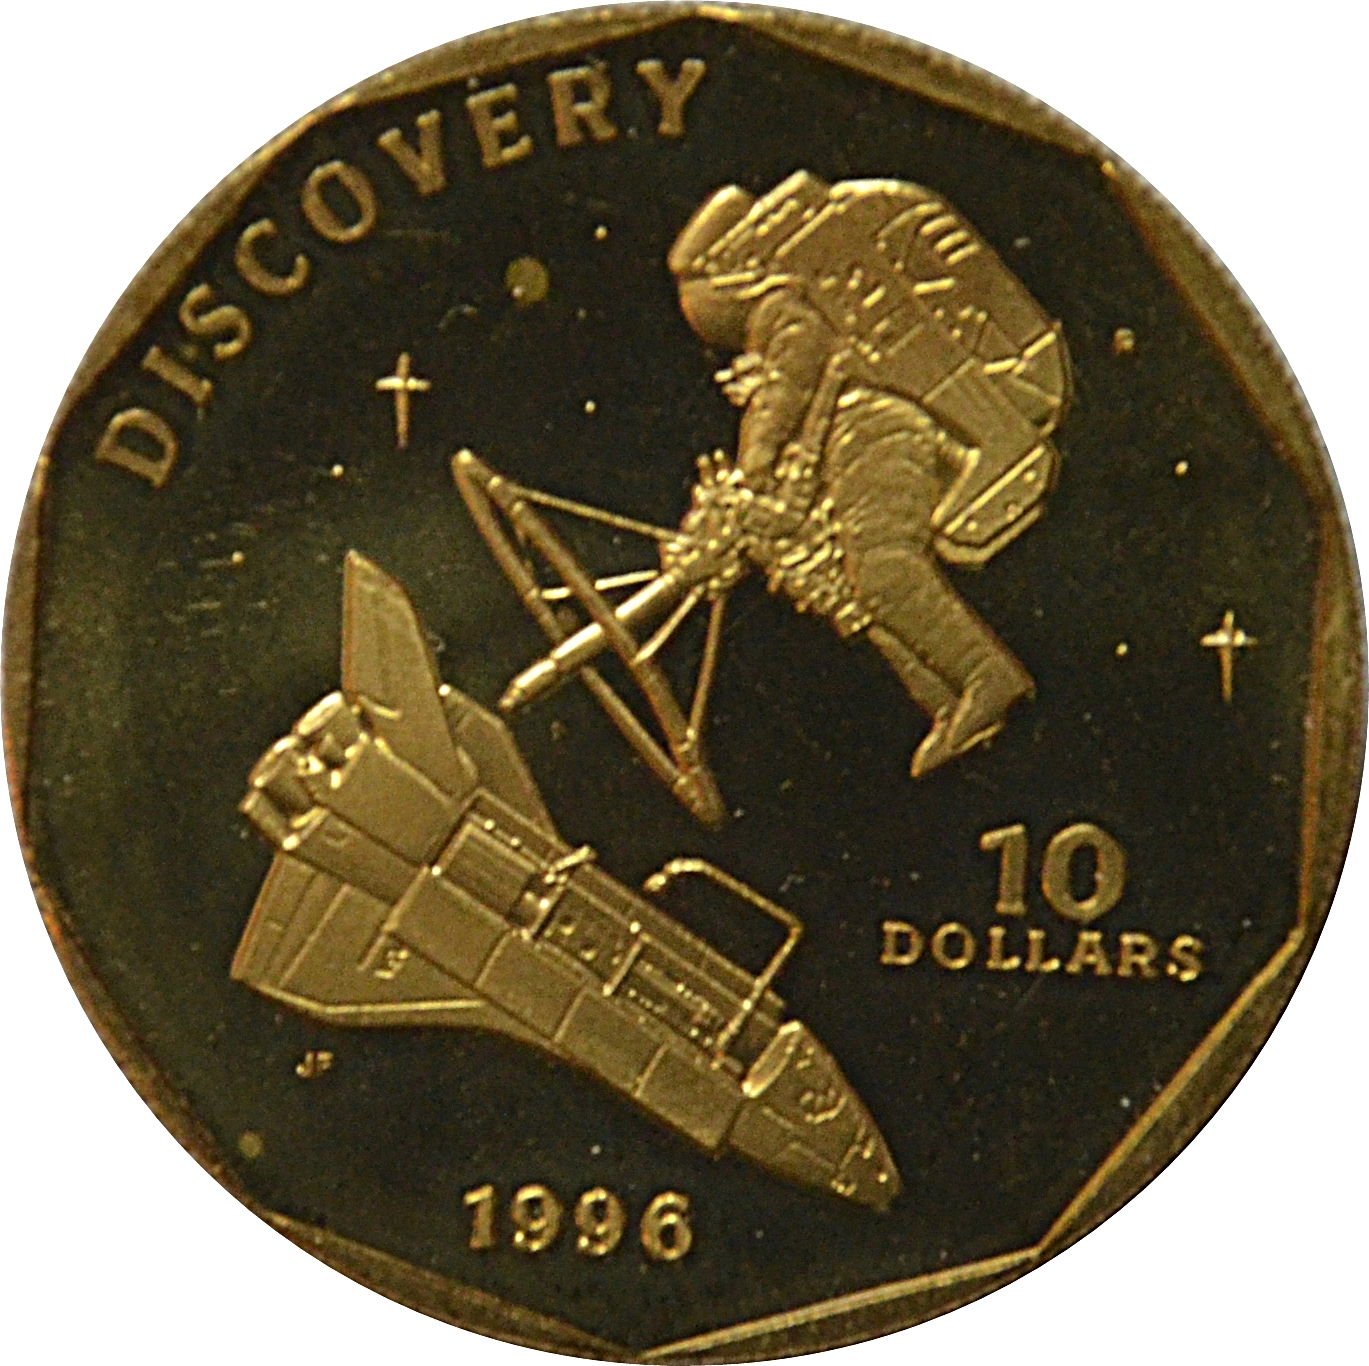 space shuttle discovery coin worth